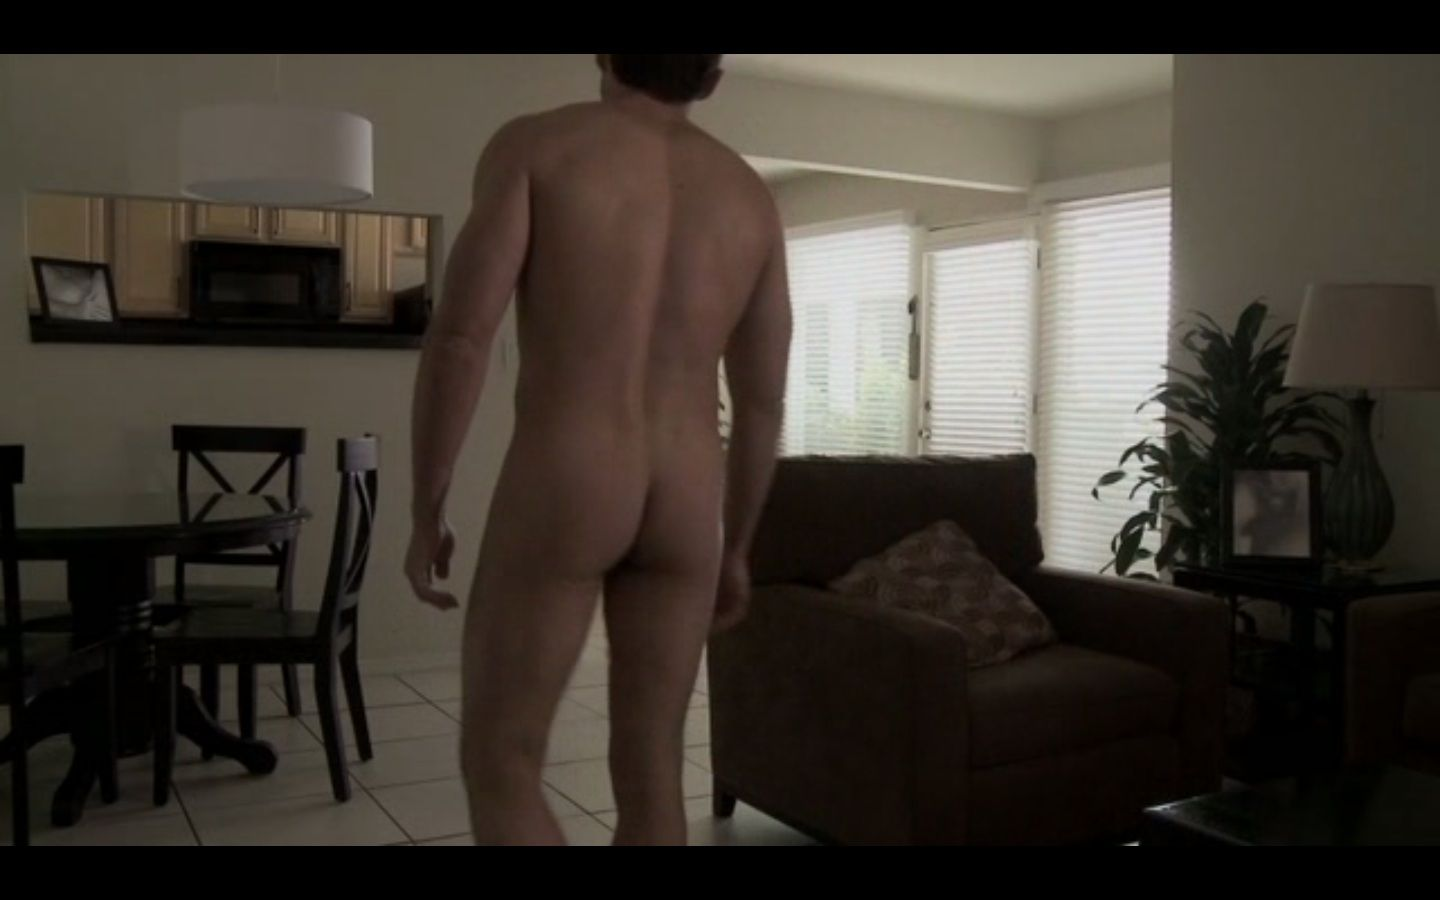 Uncle reccomend Robert pattinson butt naked